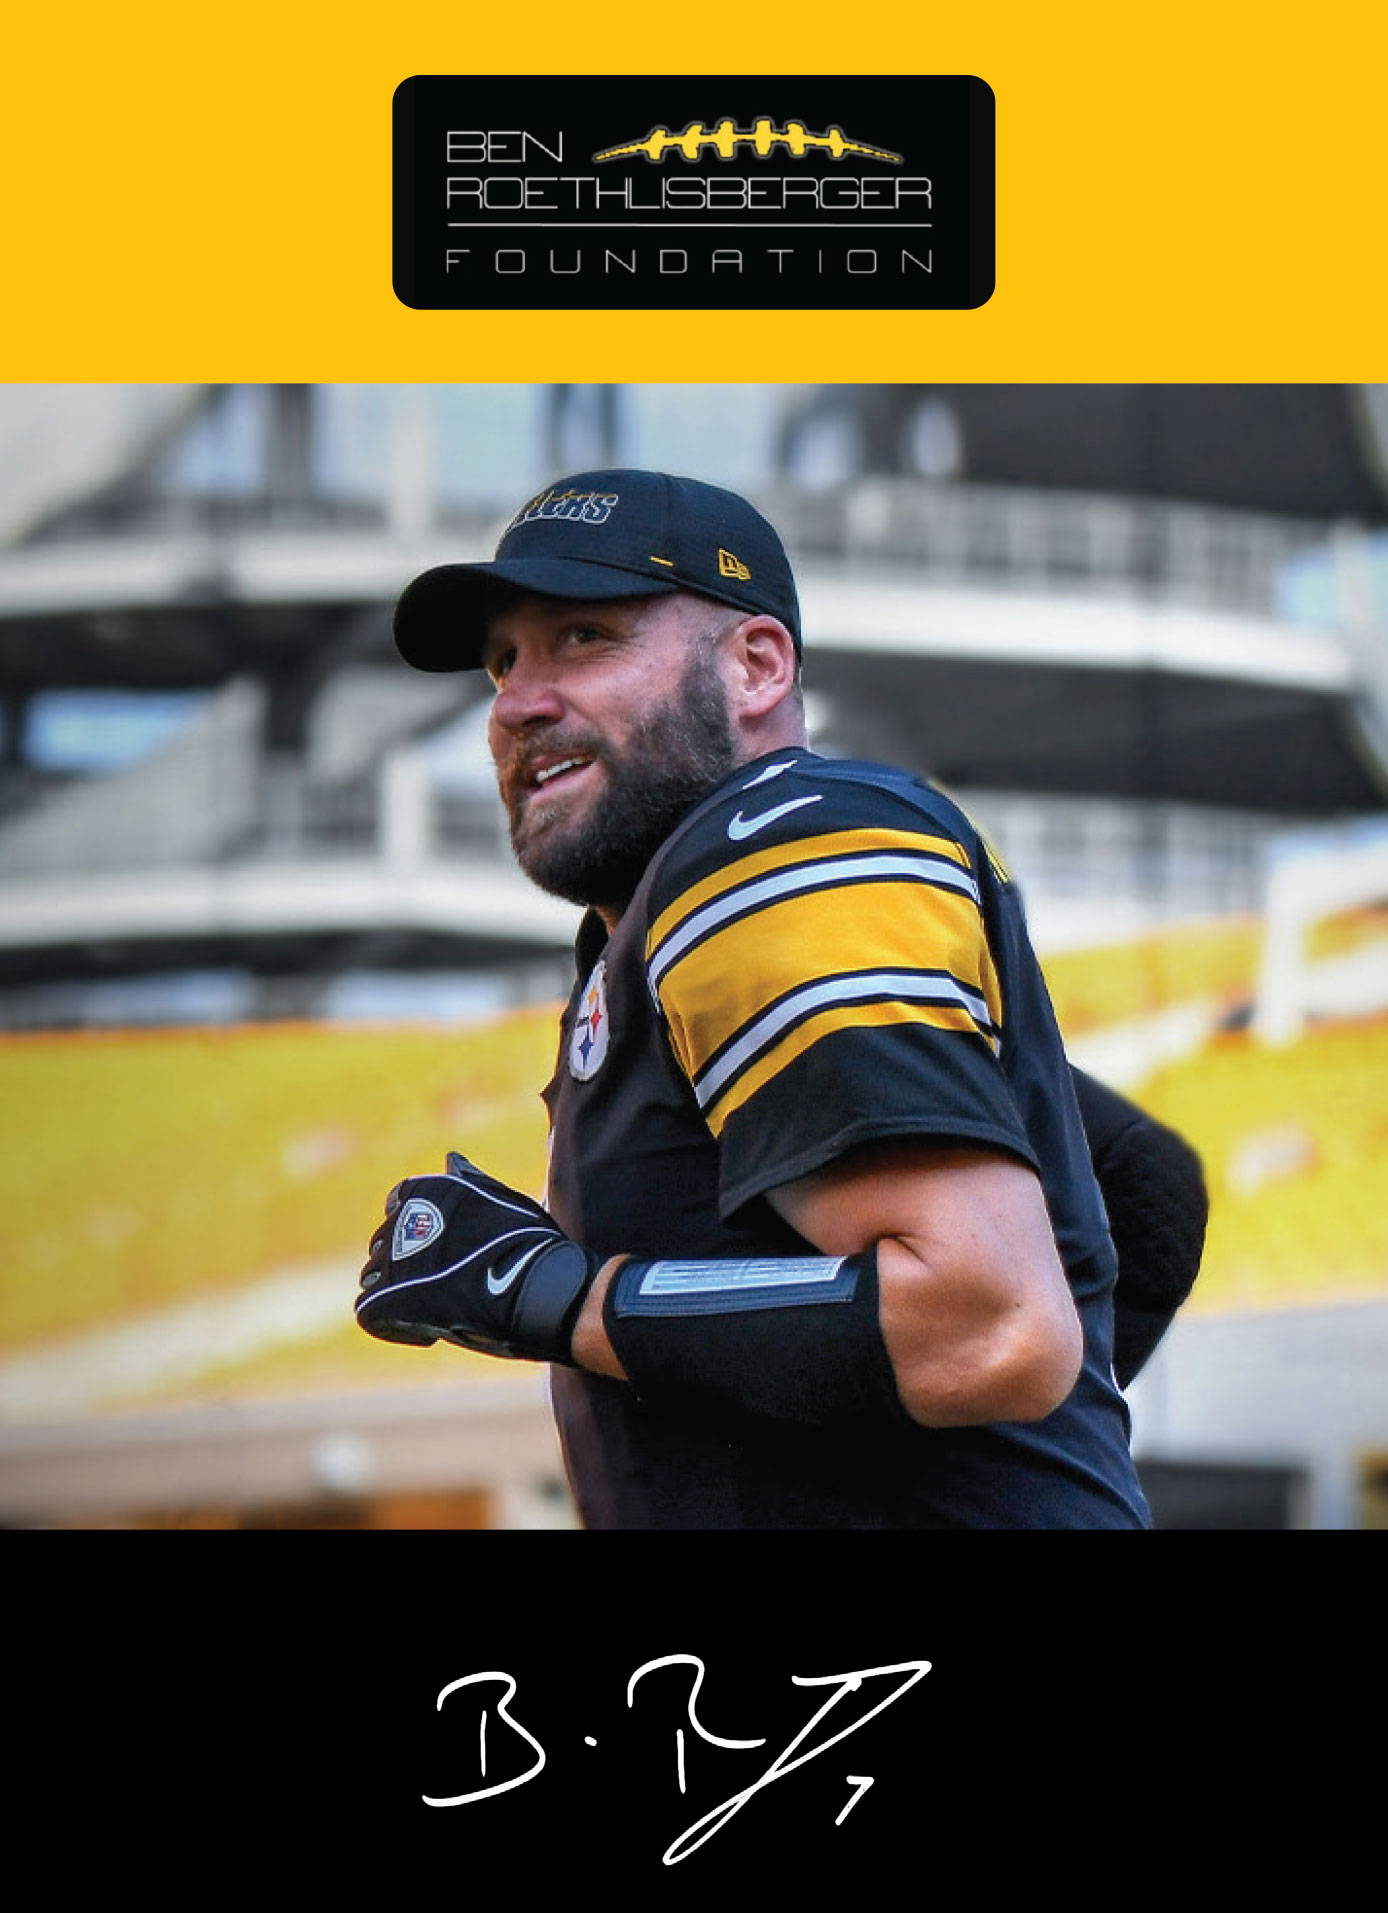 Ben Roethlisberger Foundation